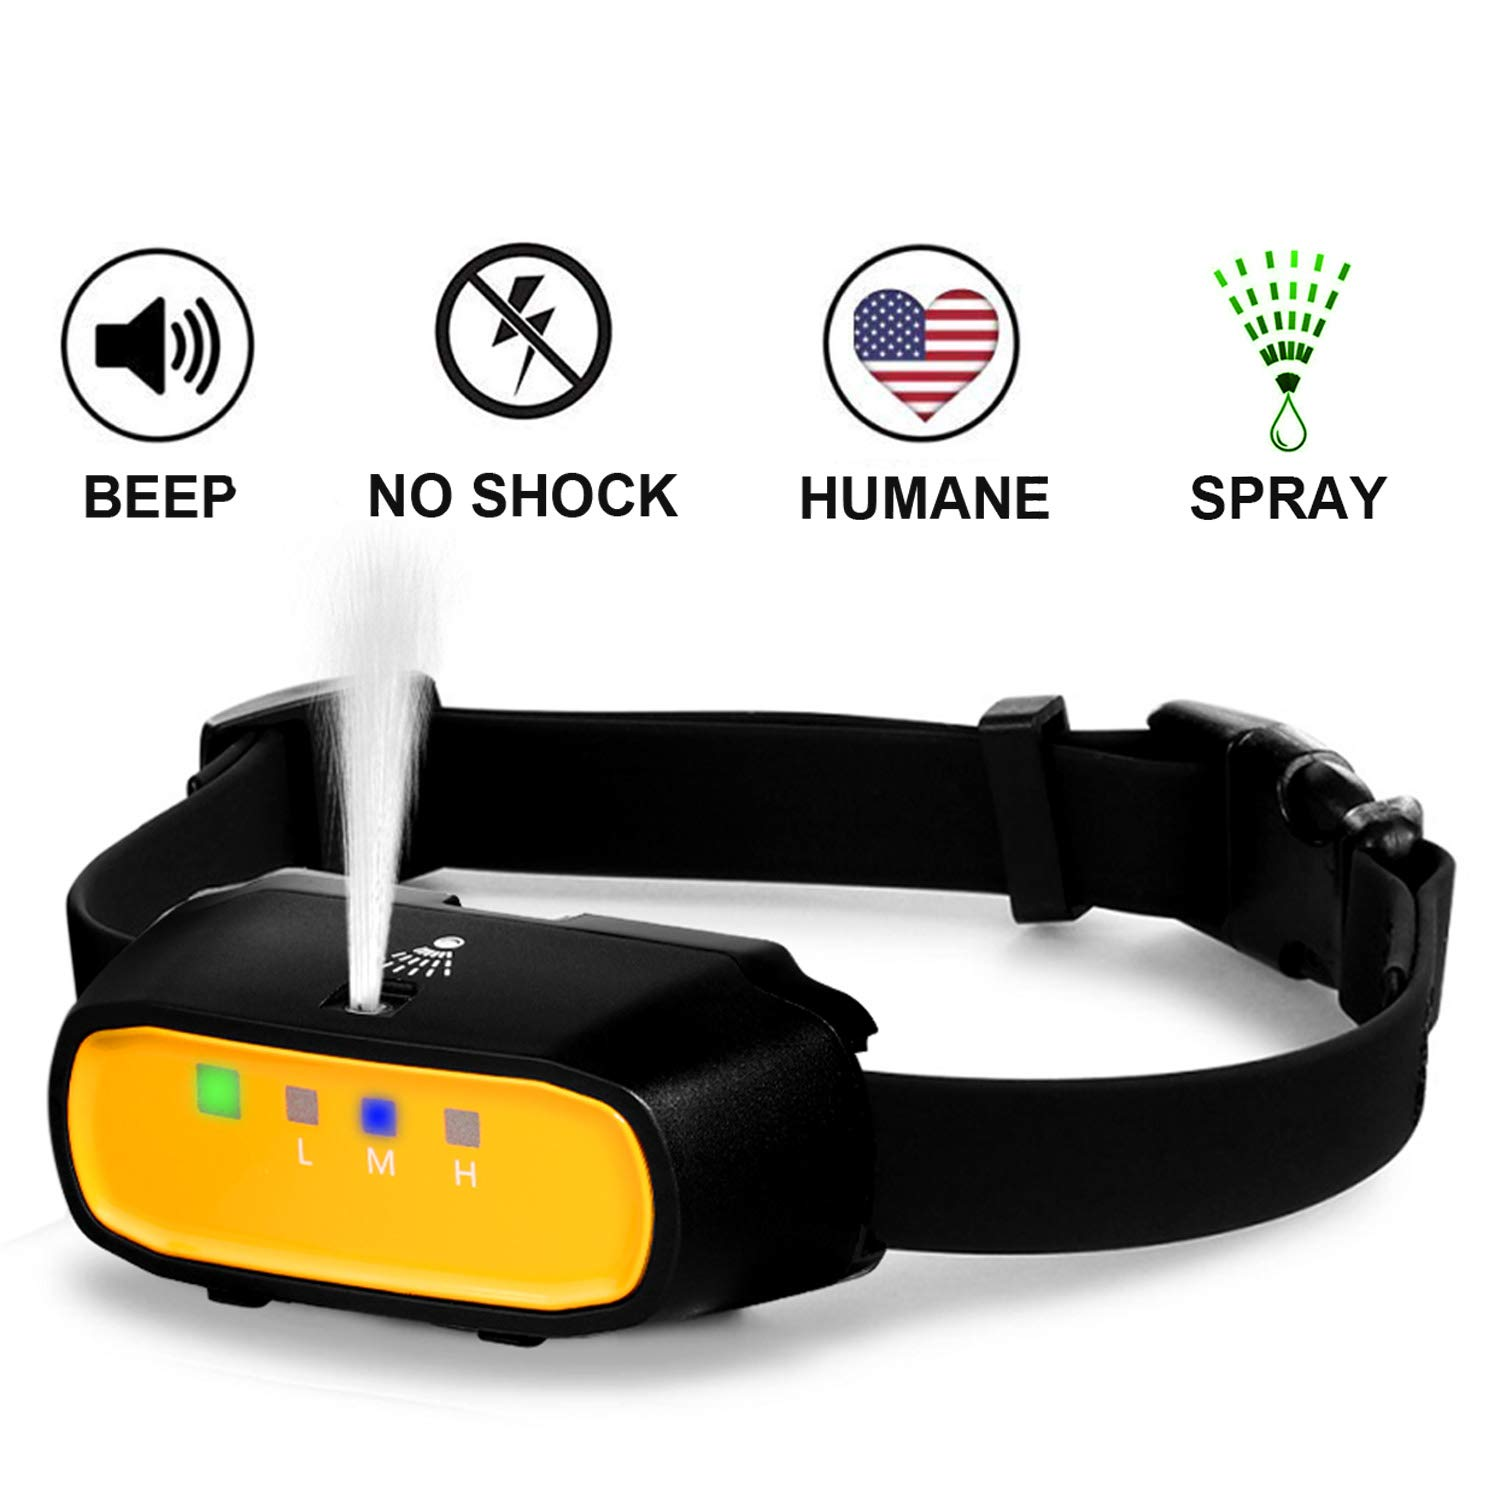 WWVVPET Spray Dog Training Collar,2 Modes Spray Dog Bark Collar (Not Included Citronella Spray),500 ft Range No Electric Shock Harmless,Rechargeable Adjustable Waterproof (NO Remote Control) by WWVVPET